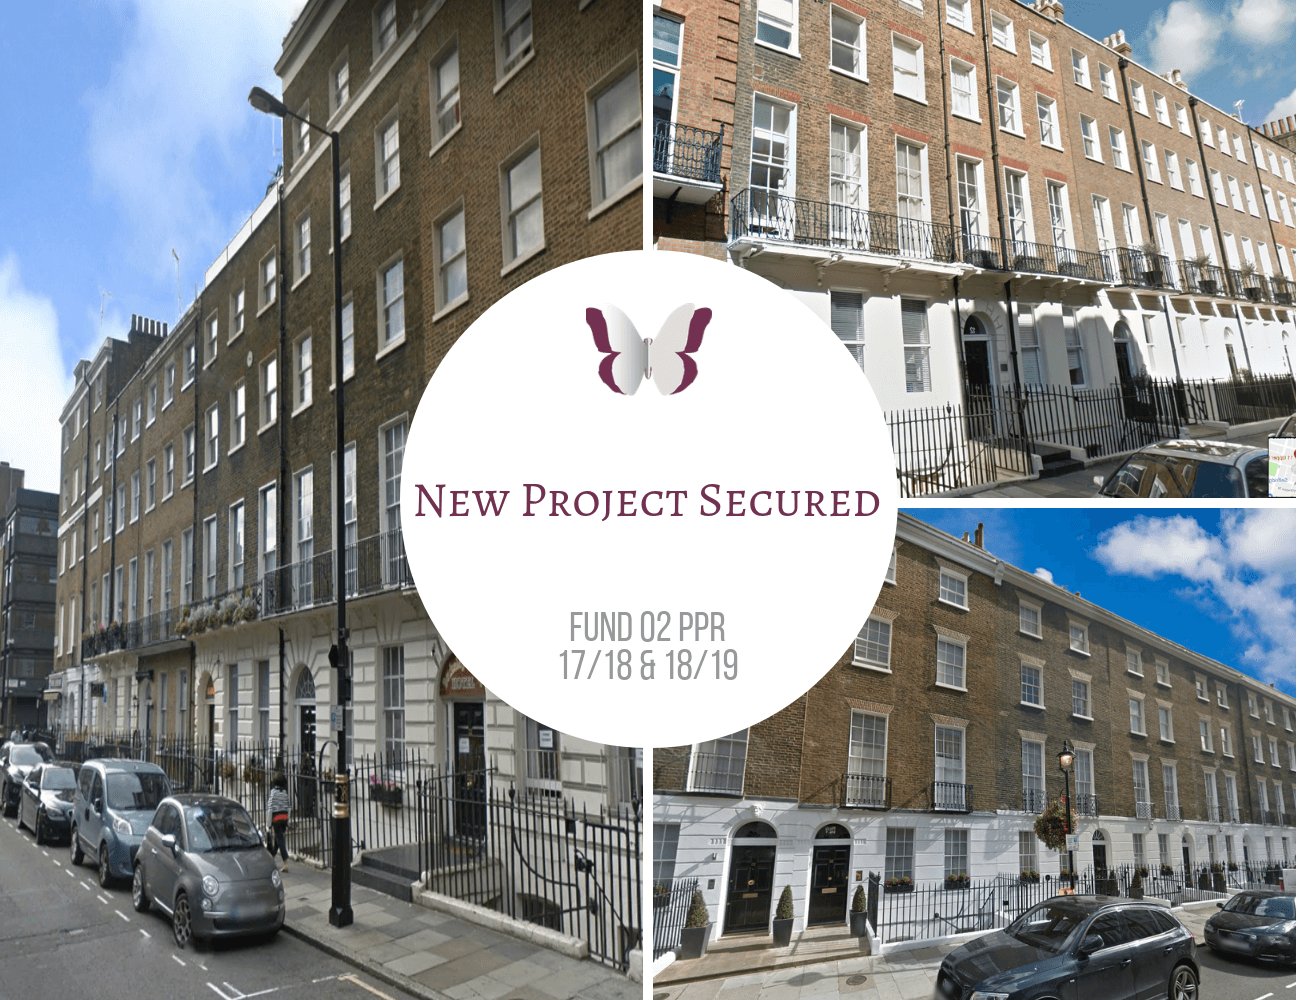 PROJECT SECURED: THE PORTMAN ESTATE